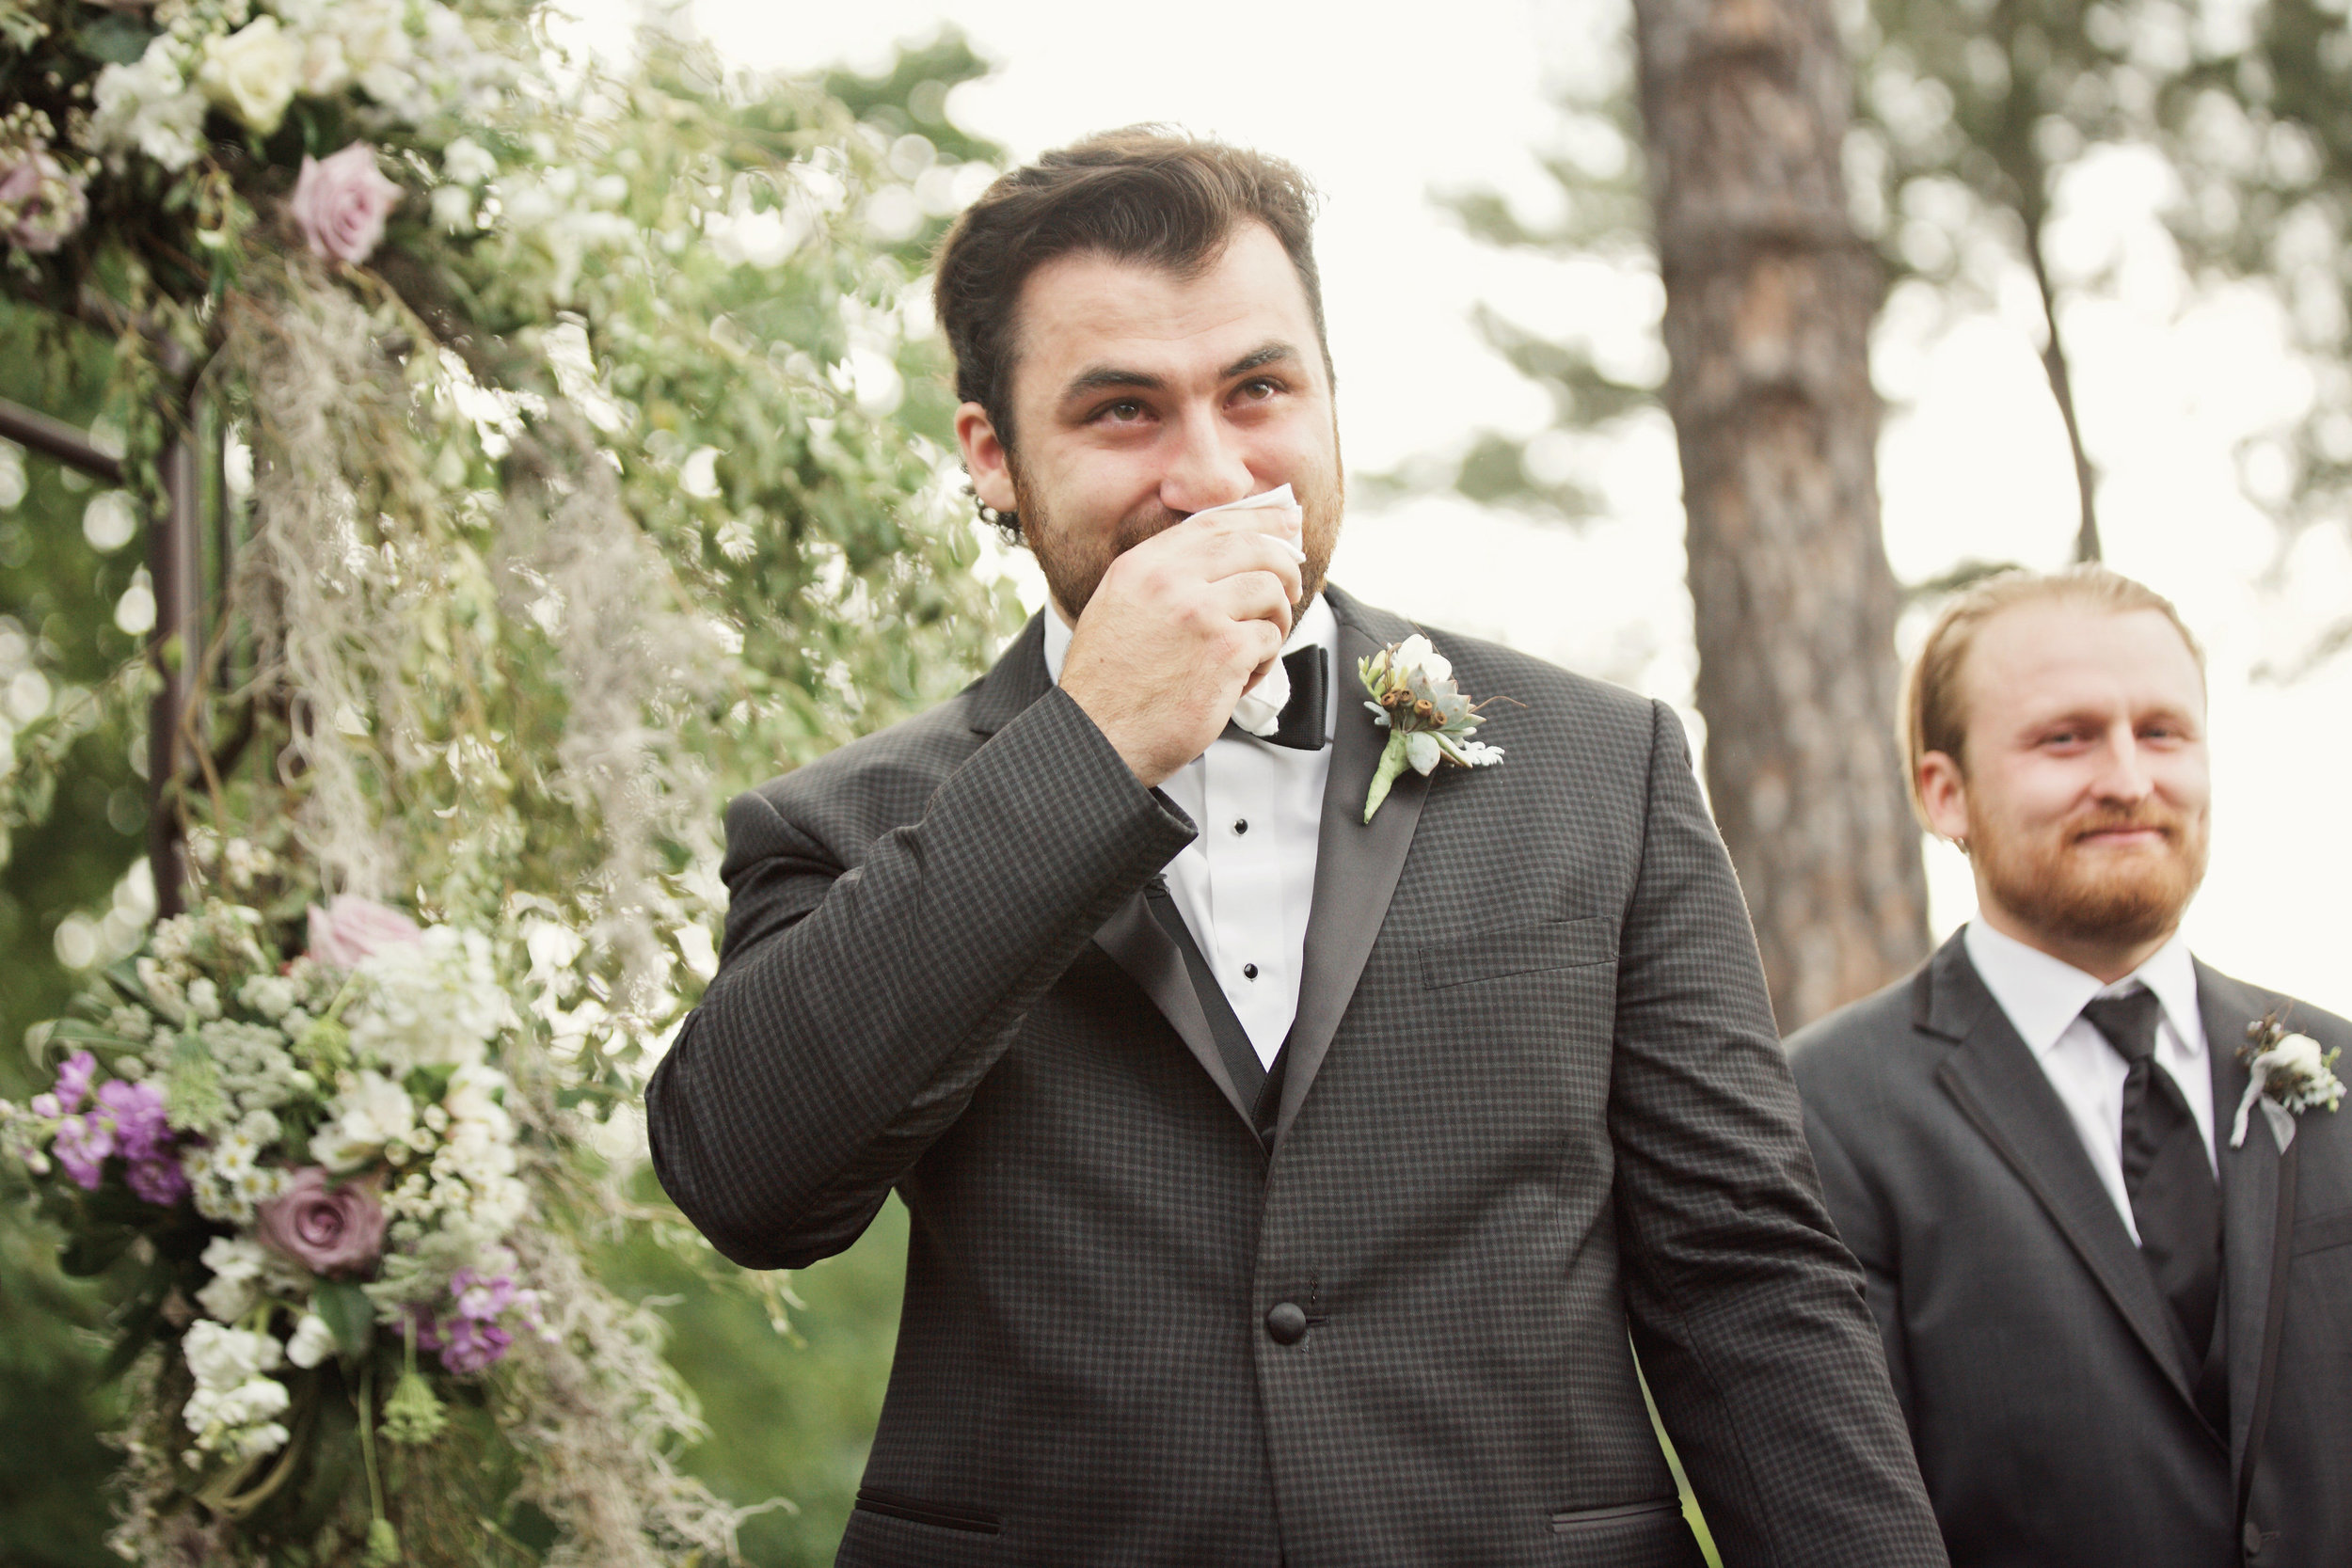 Rachel Slauer Events River Club May Wedding Planning Groom Crying 19.jpg